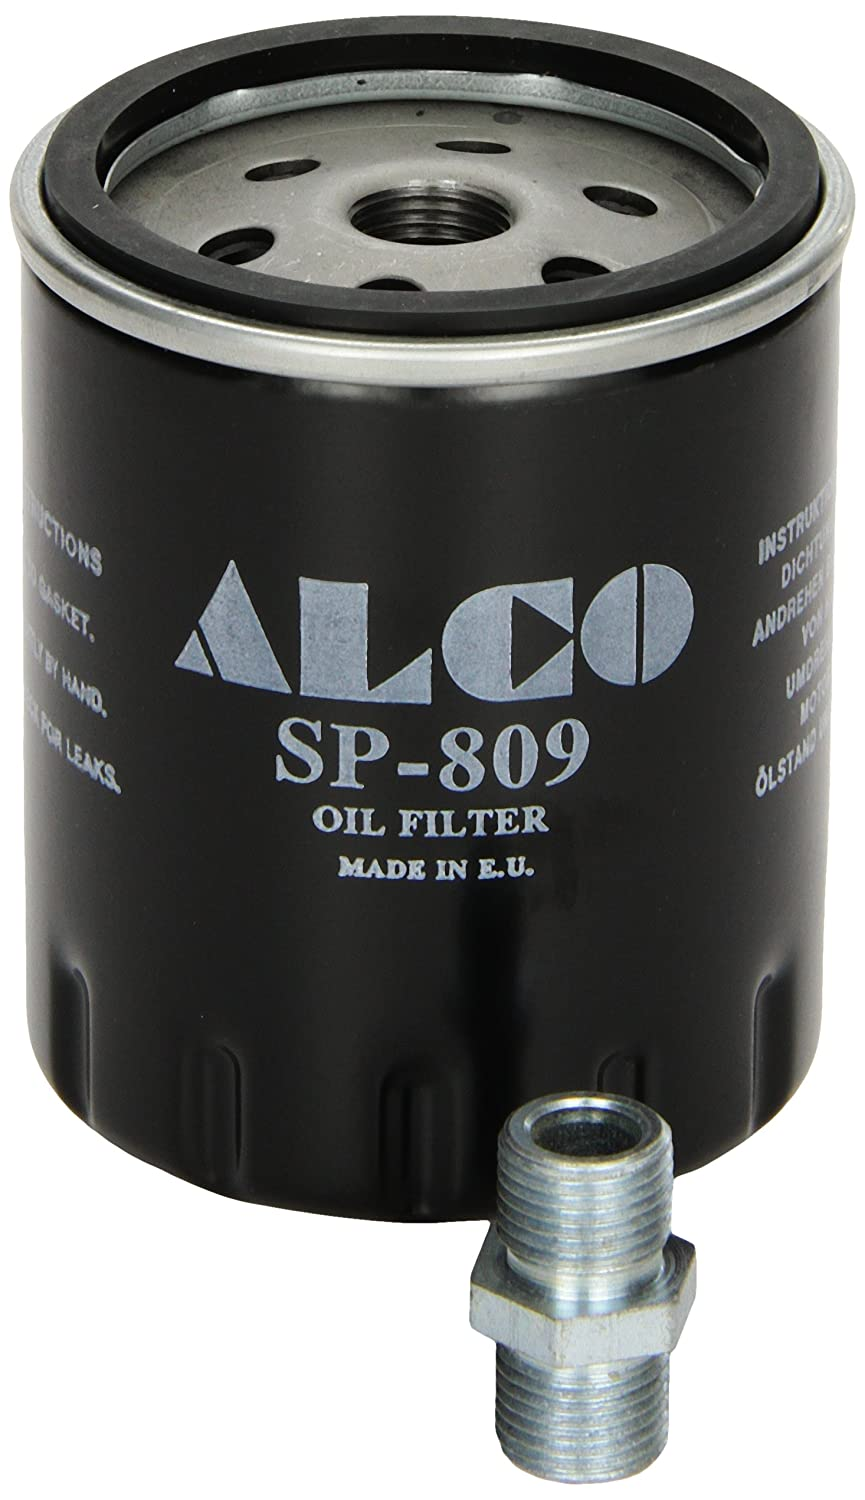 Alco Filter SP-809 Oil Filter